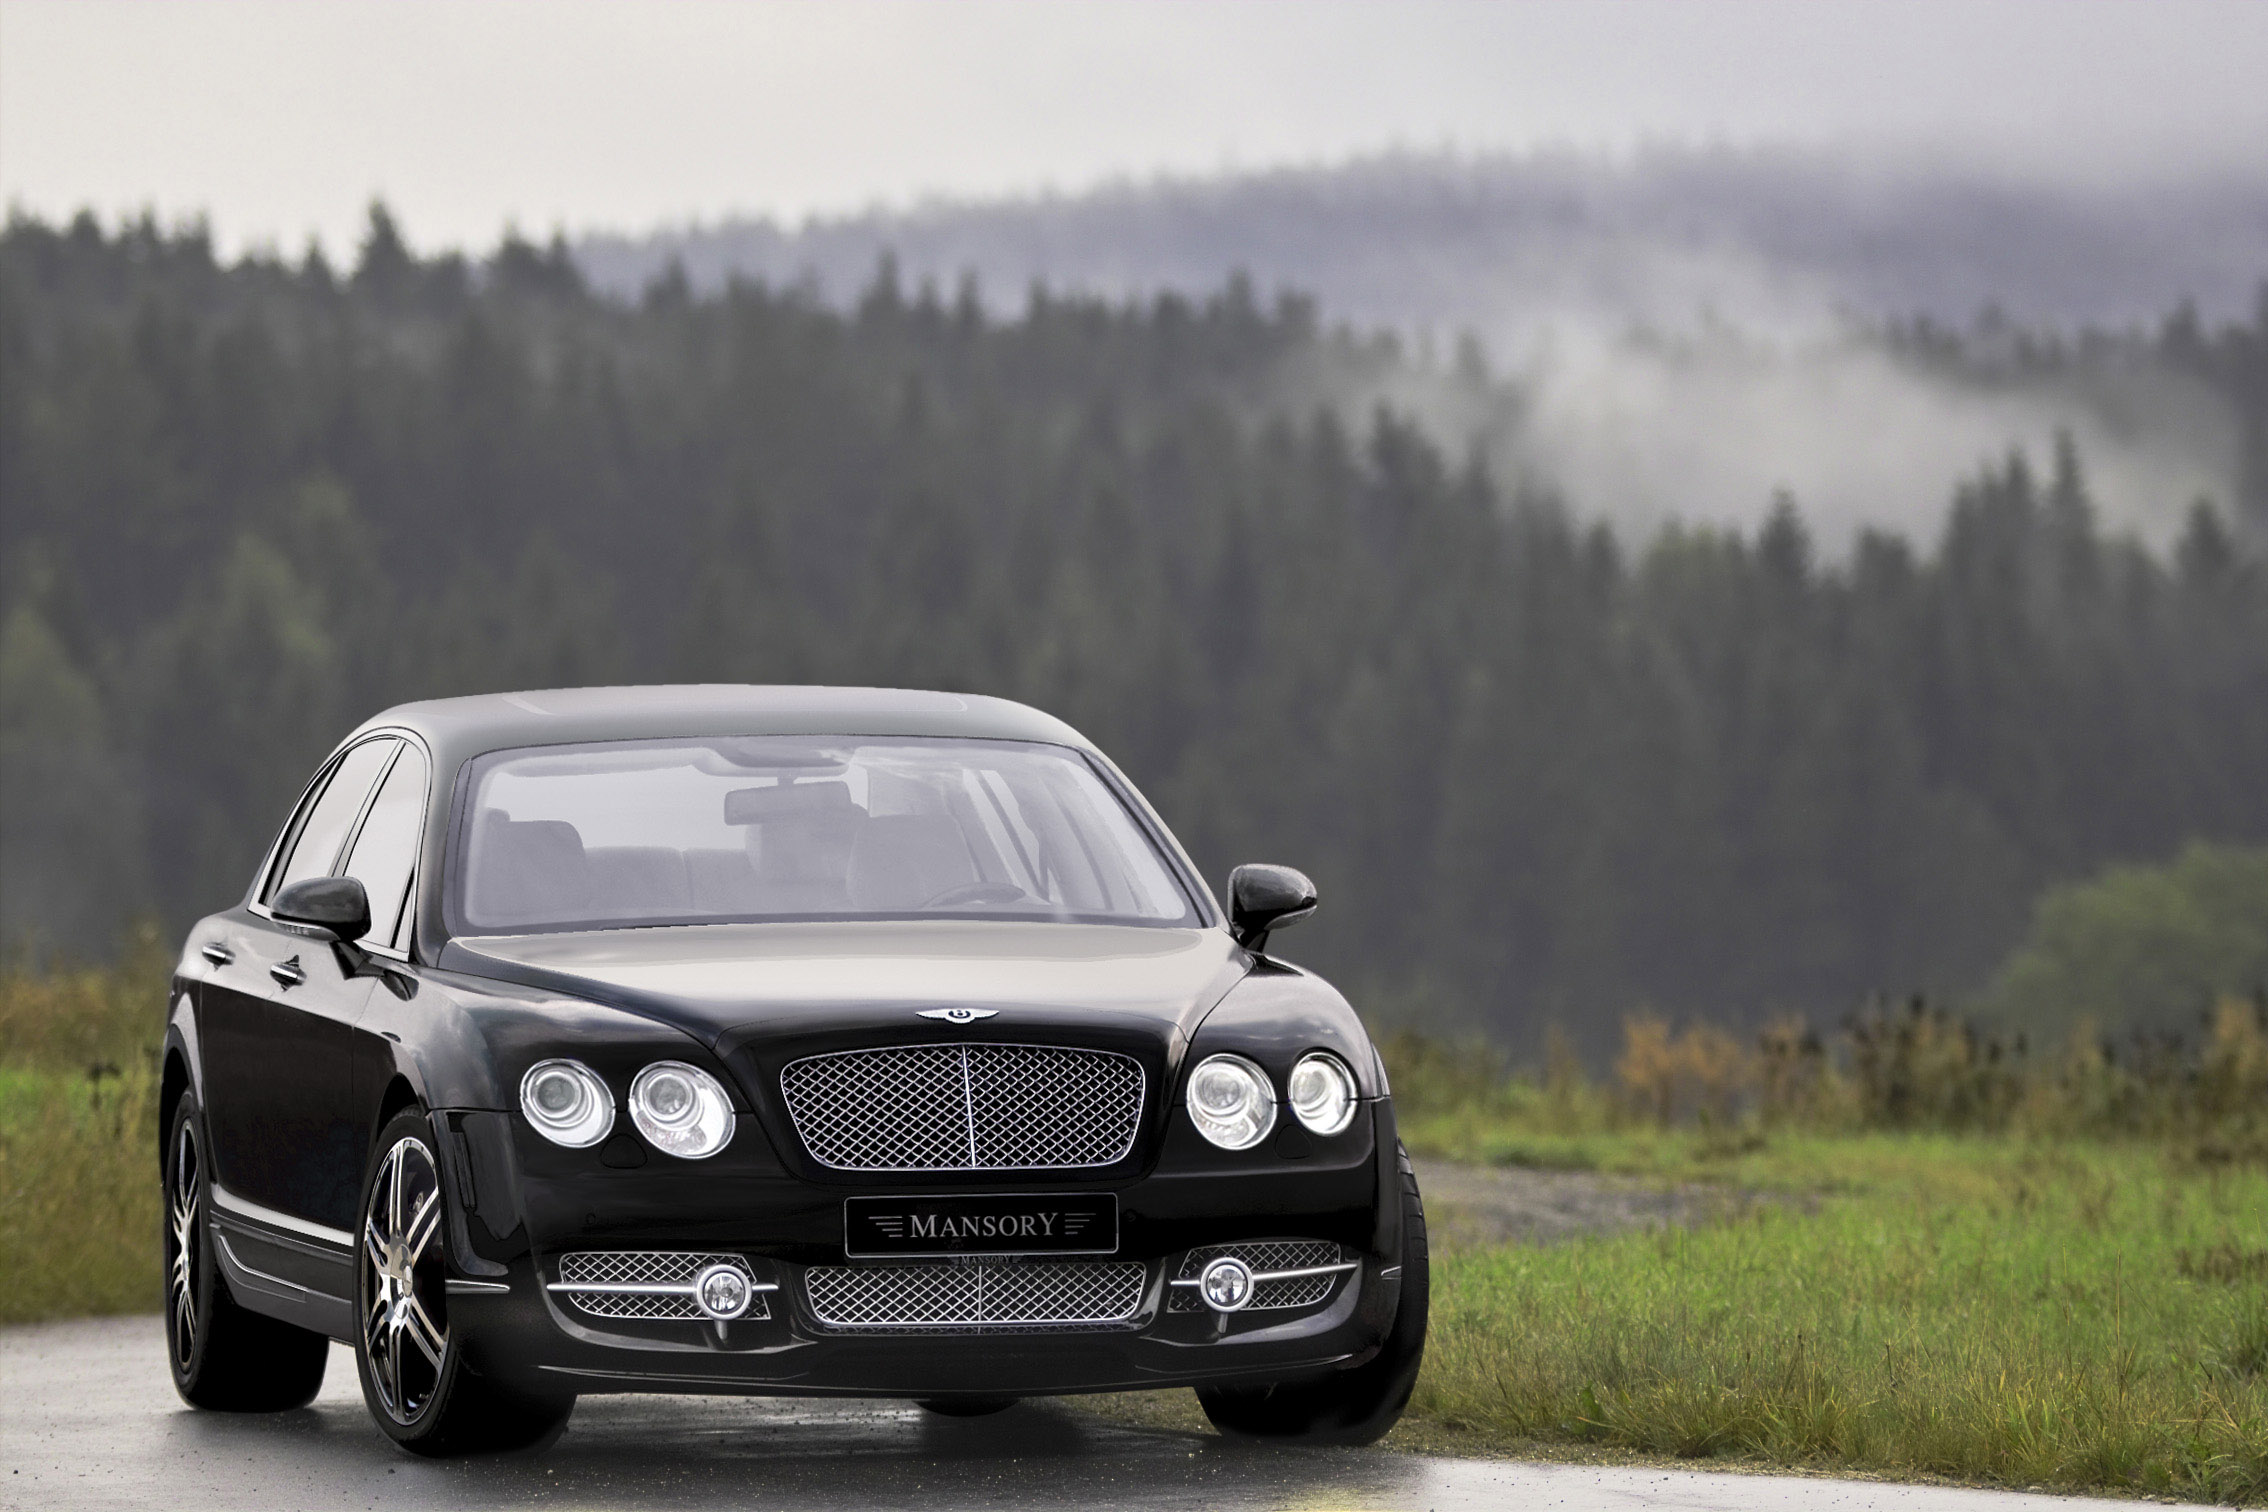 2006 Mansory Bentley Continental Flying Spur Hd Pictures Carsinvasion Com